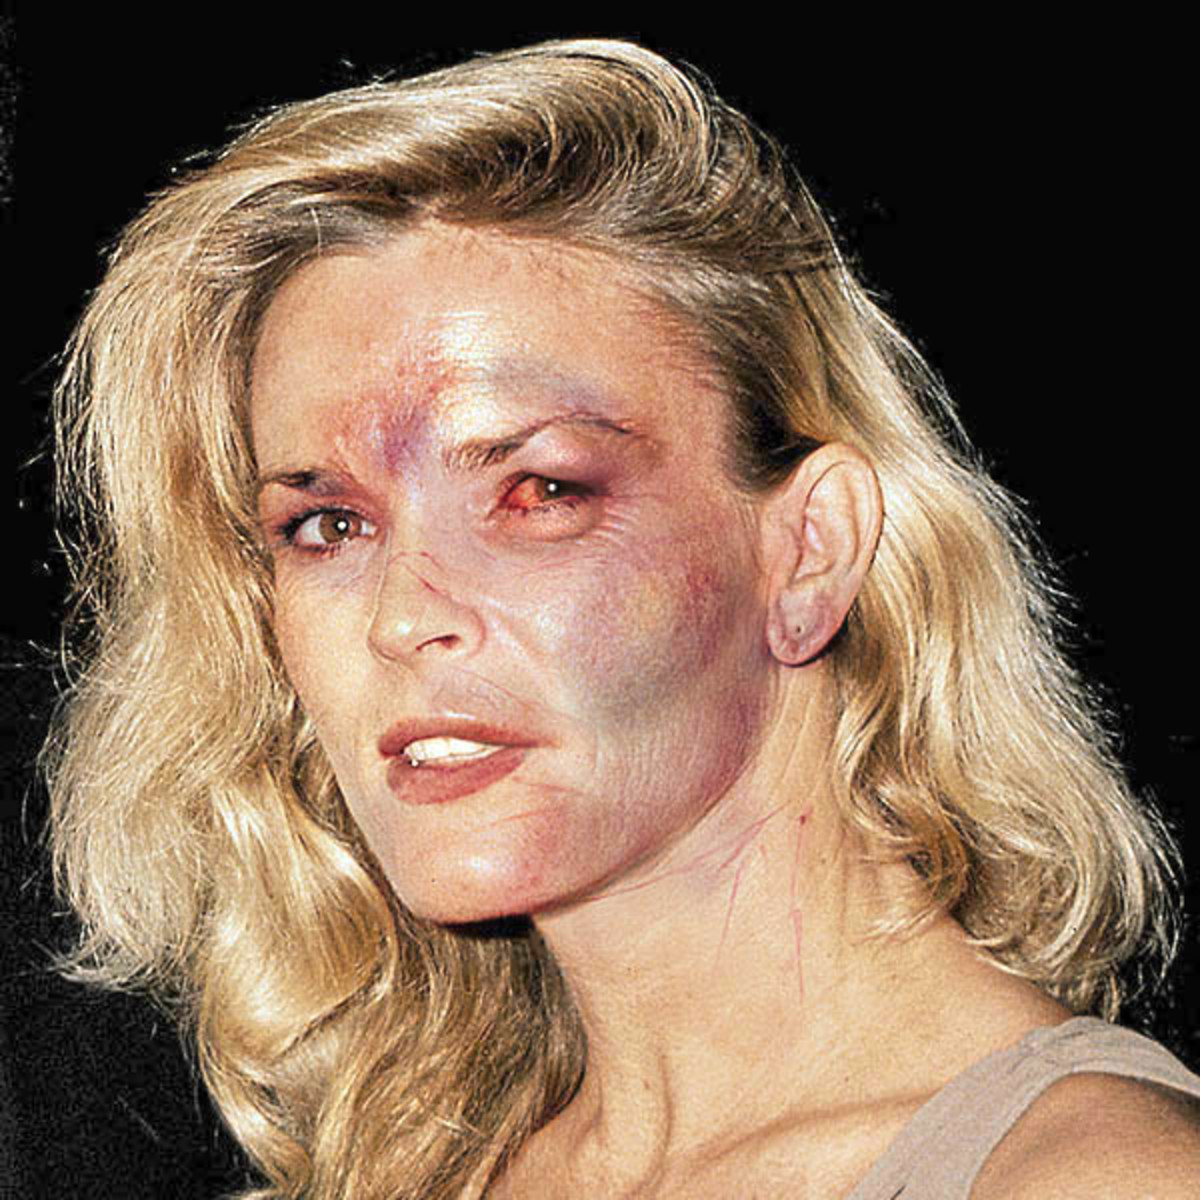 NICOLE SIMPSON—THE TIME OJ DIDN'T KILL HER